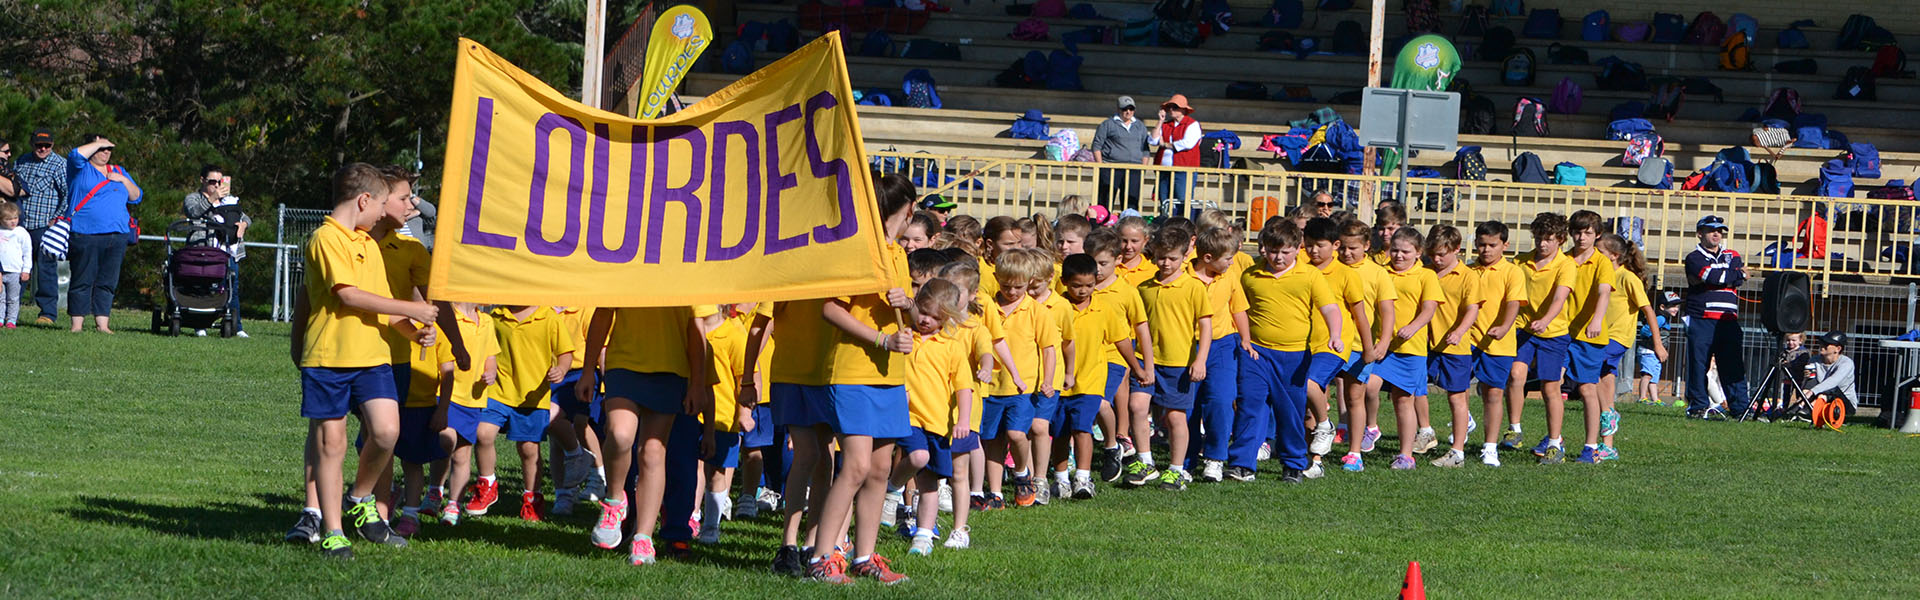 athletics carnival 2017 015.jpg